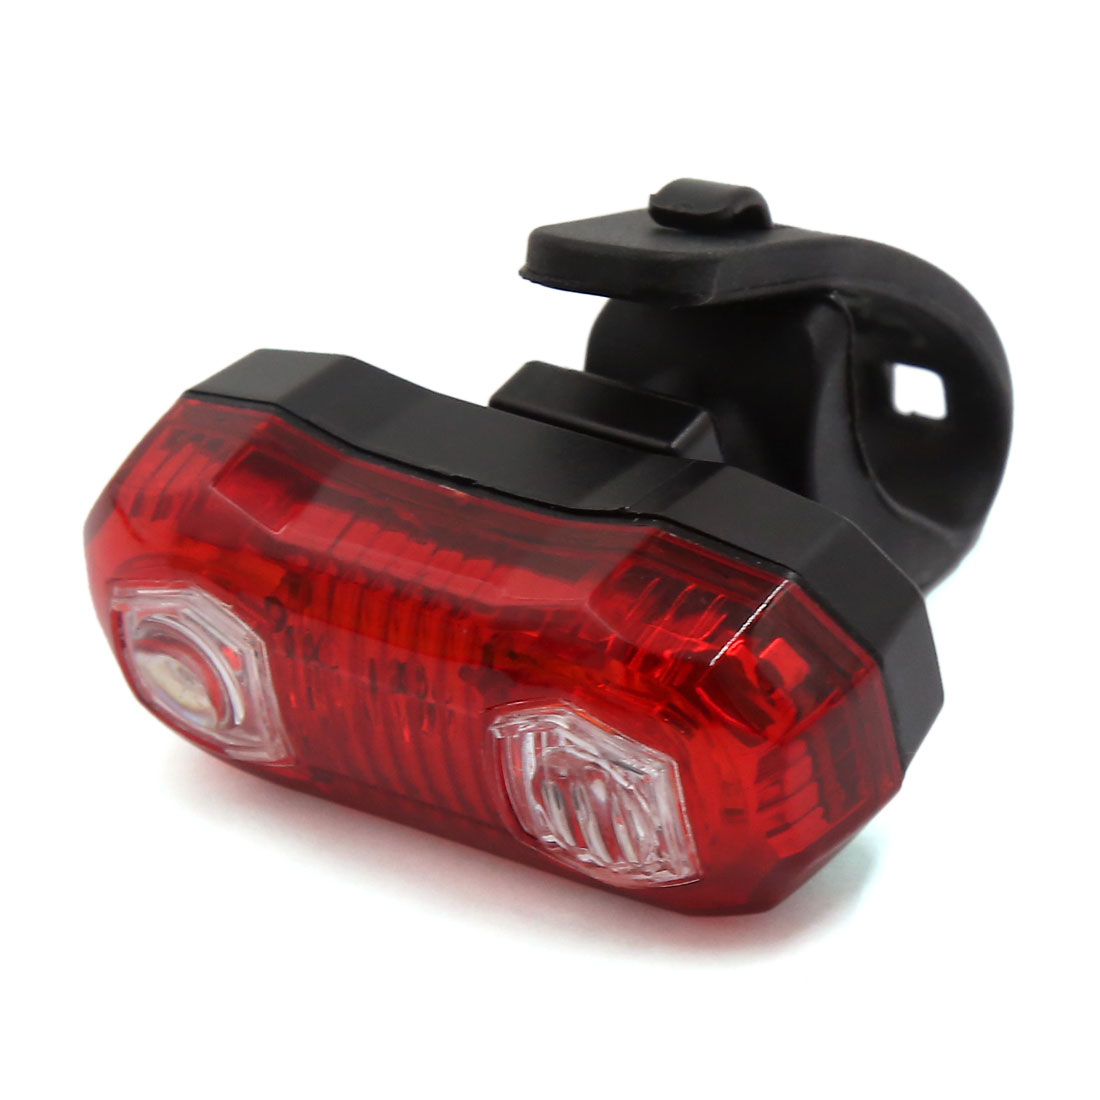 5 LEDs Bicycle Rear Tail Lamp Cycling Red Bright Light Bike Safety 3 Modes